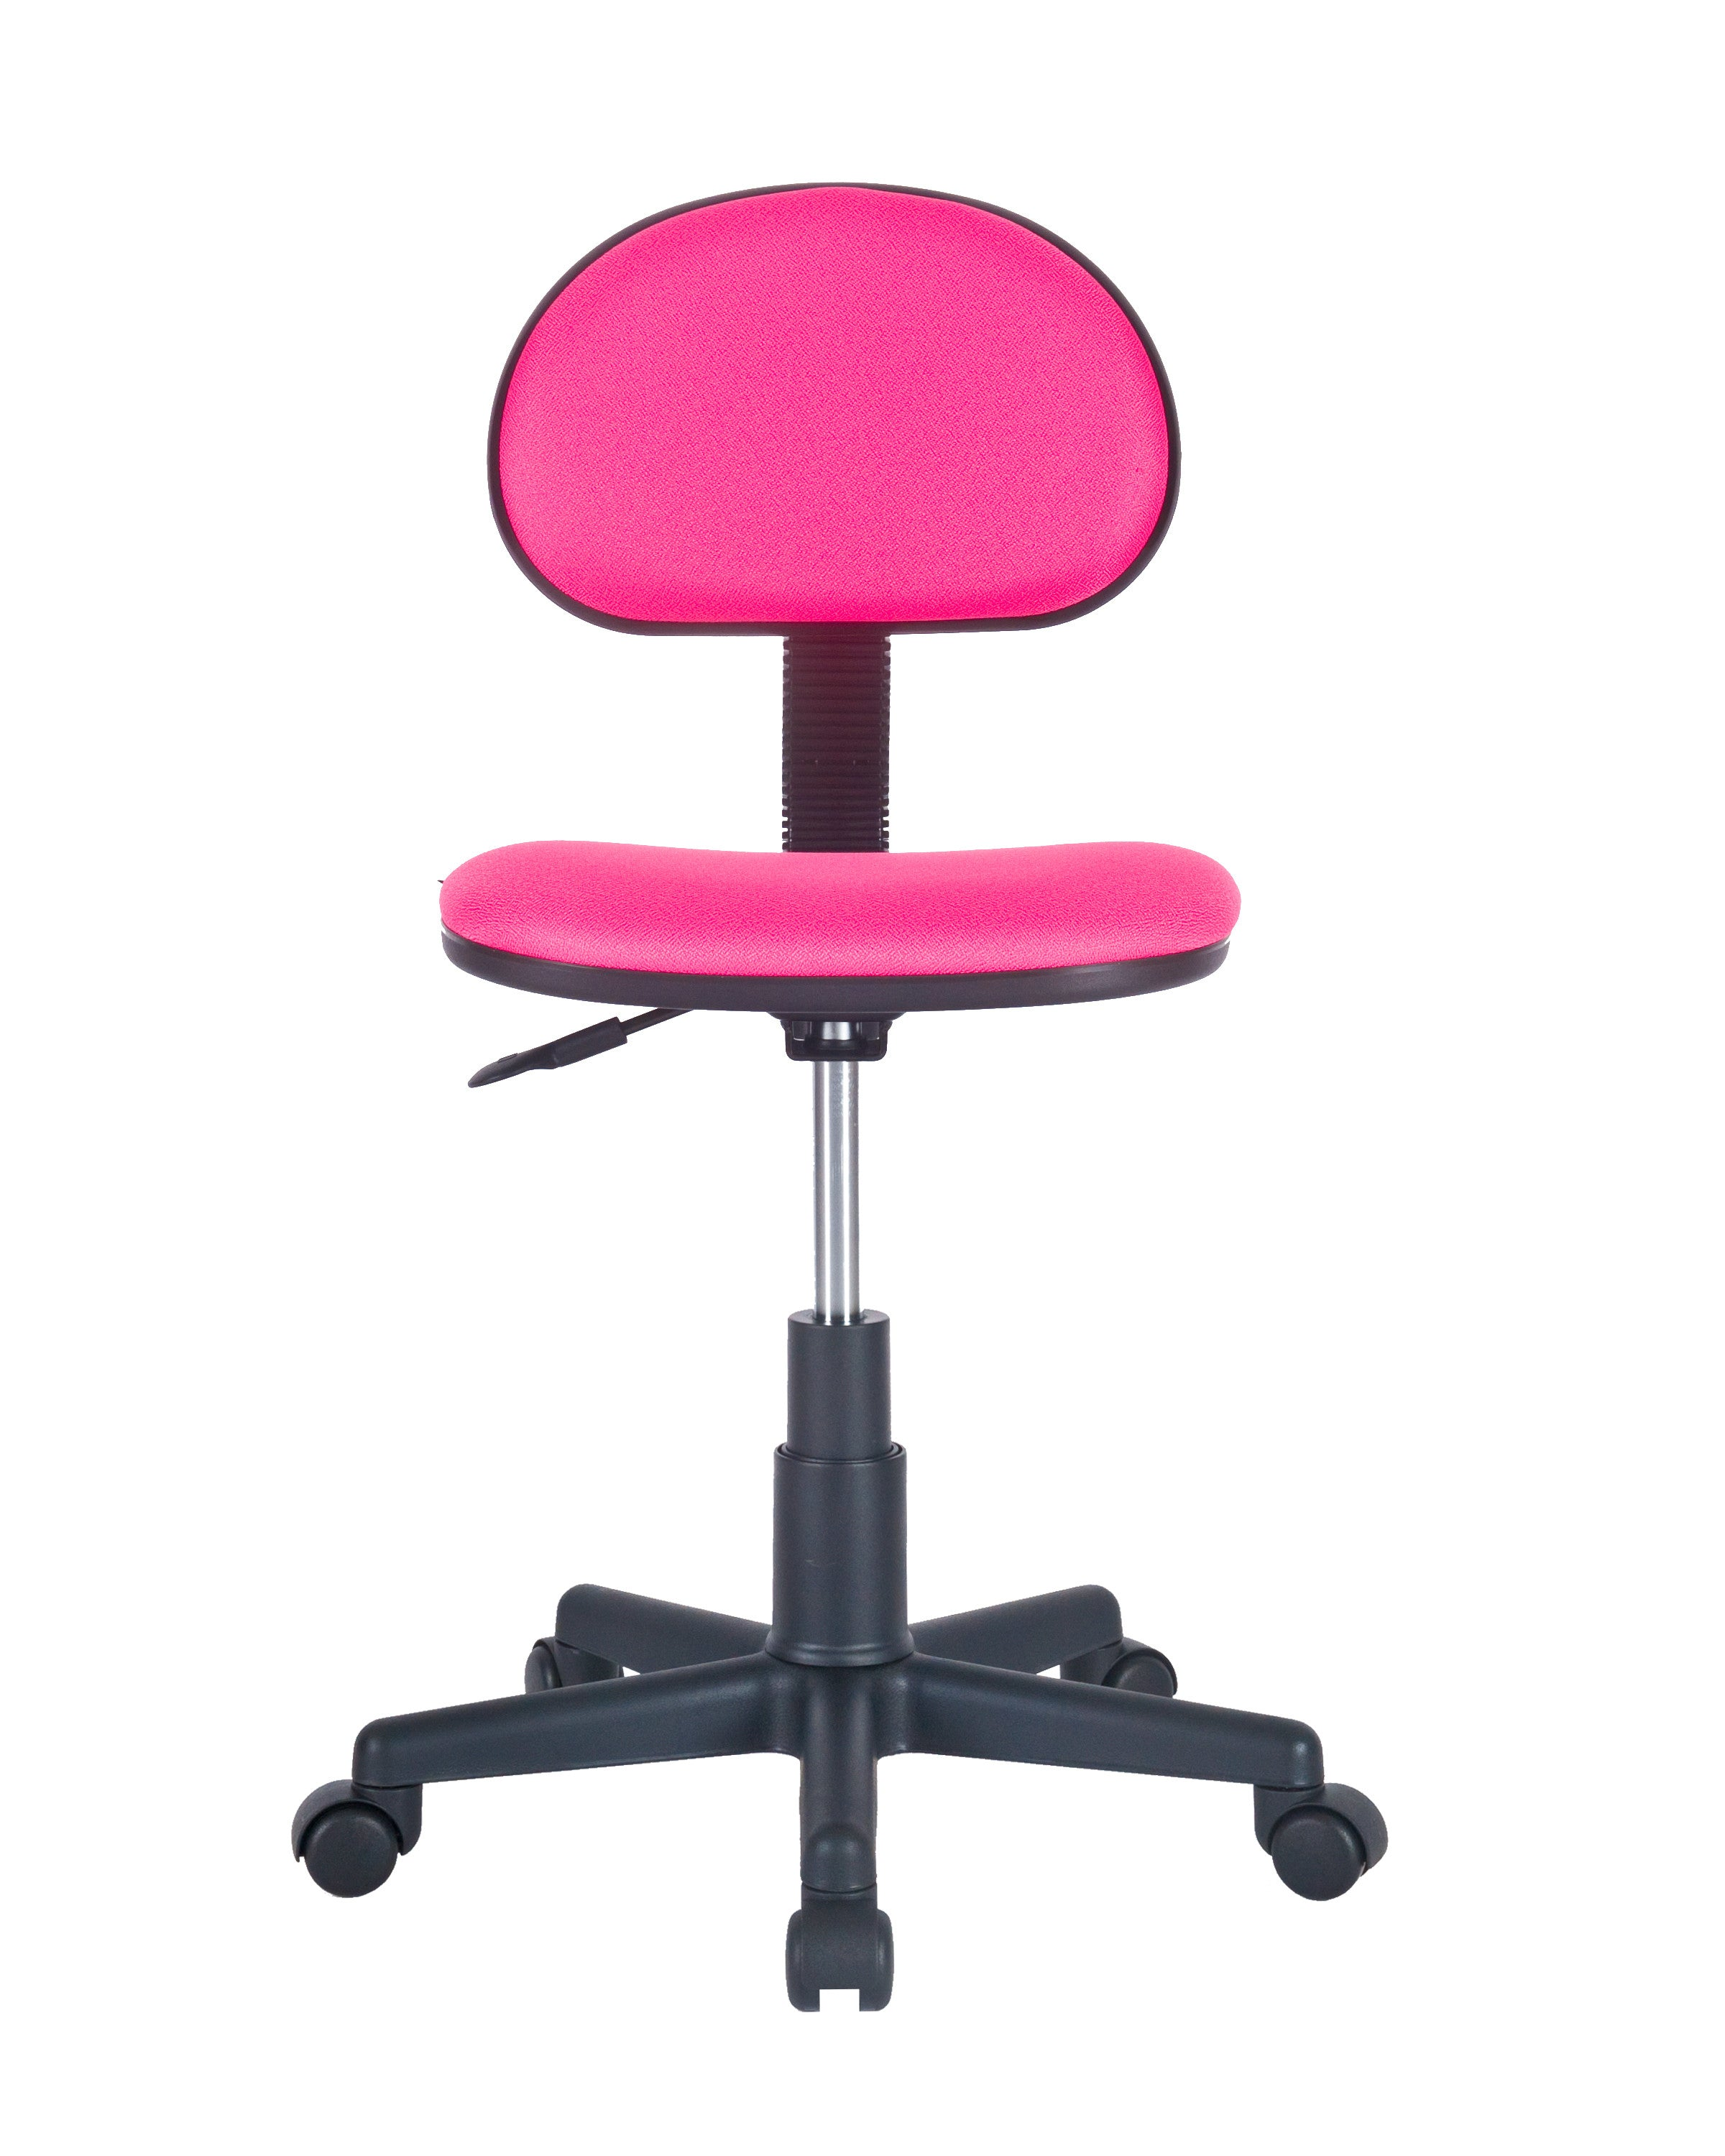 Armless Task Chair by Charm Furniture (Pink)